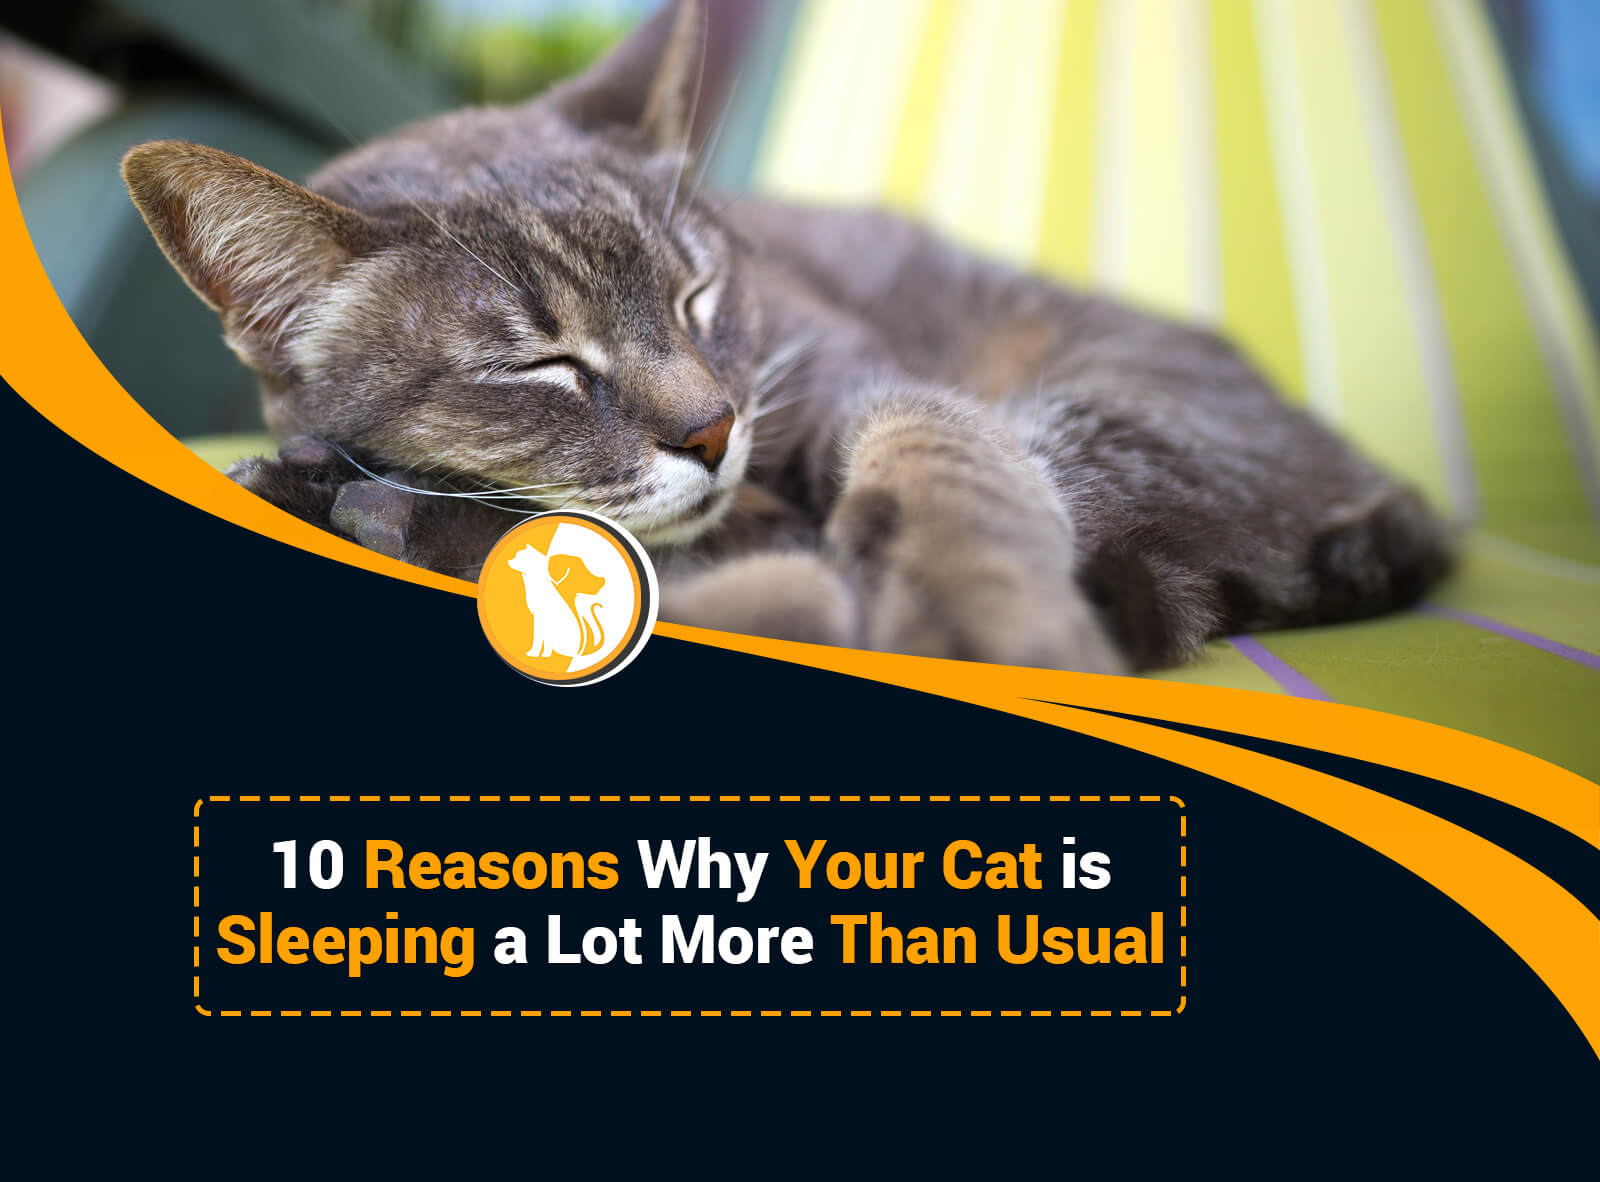 10 Reasons Why Your Cat is Sleeping a Lot More Than Usual